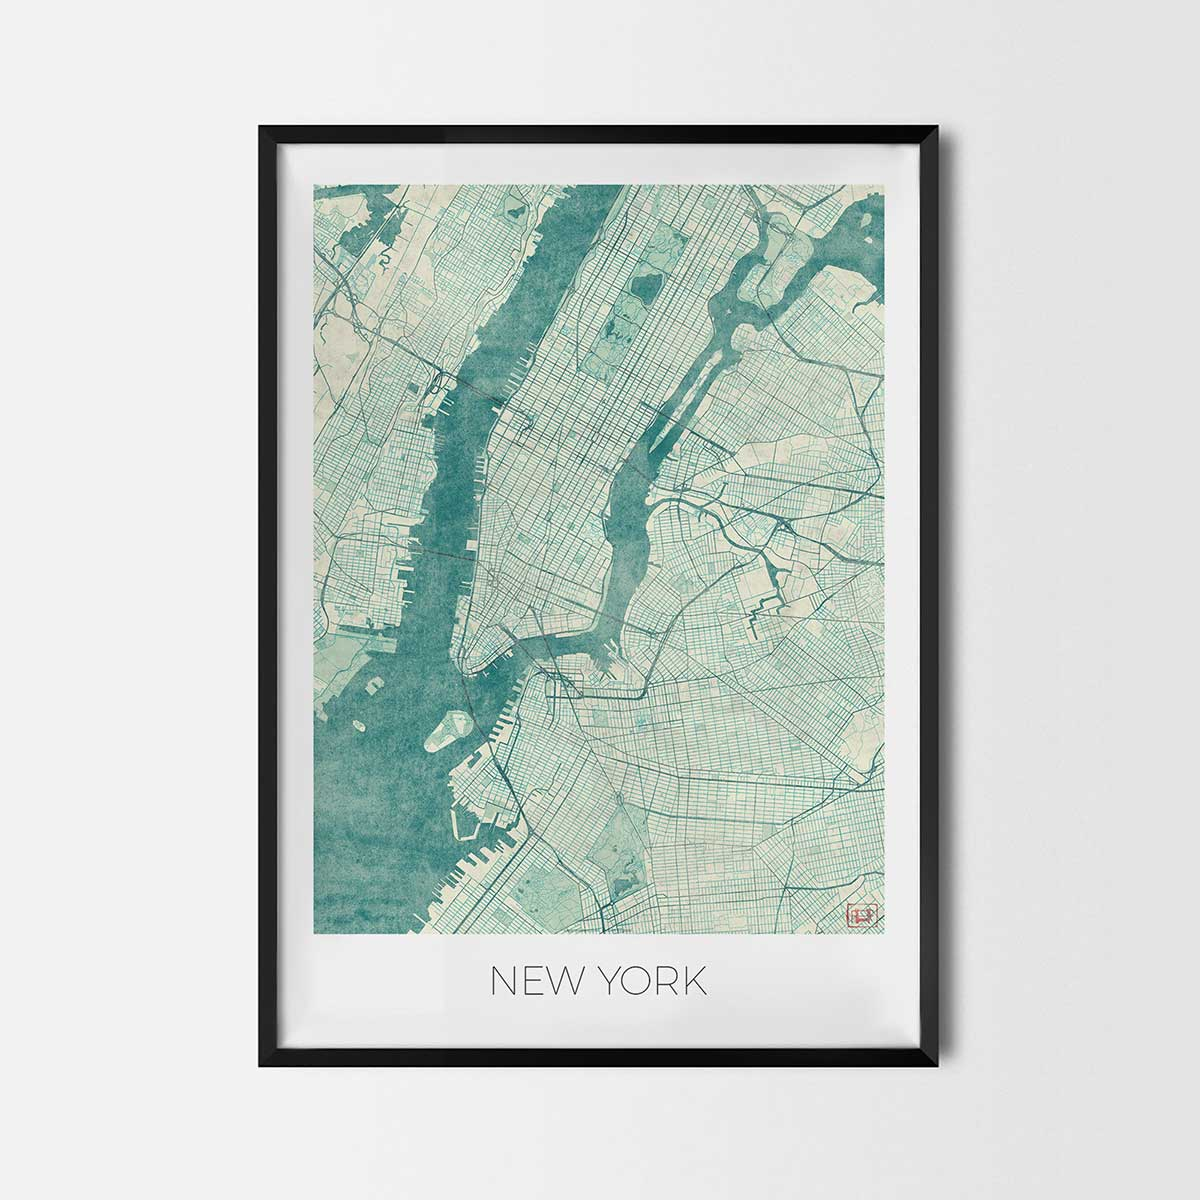 City Map Prints New York art posters   City Art Map Posters and Prints